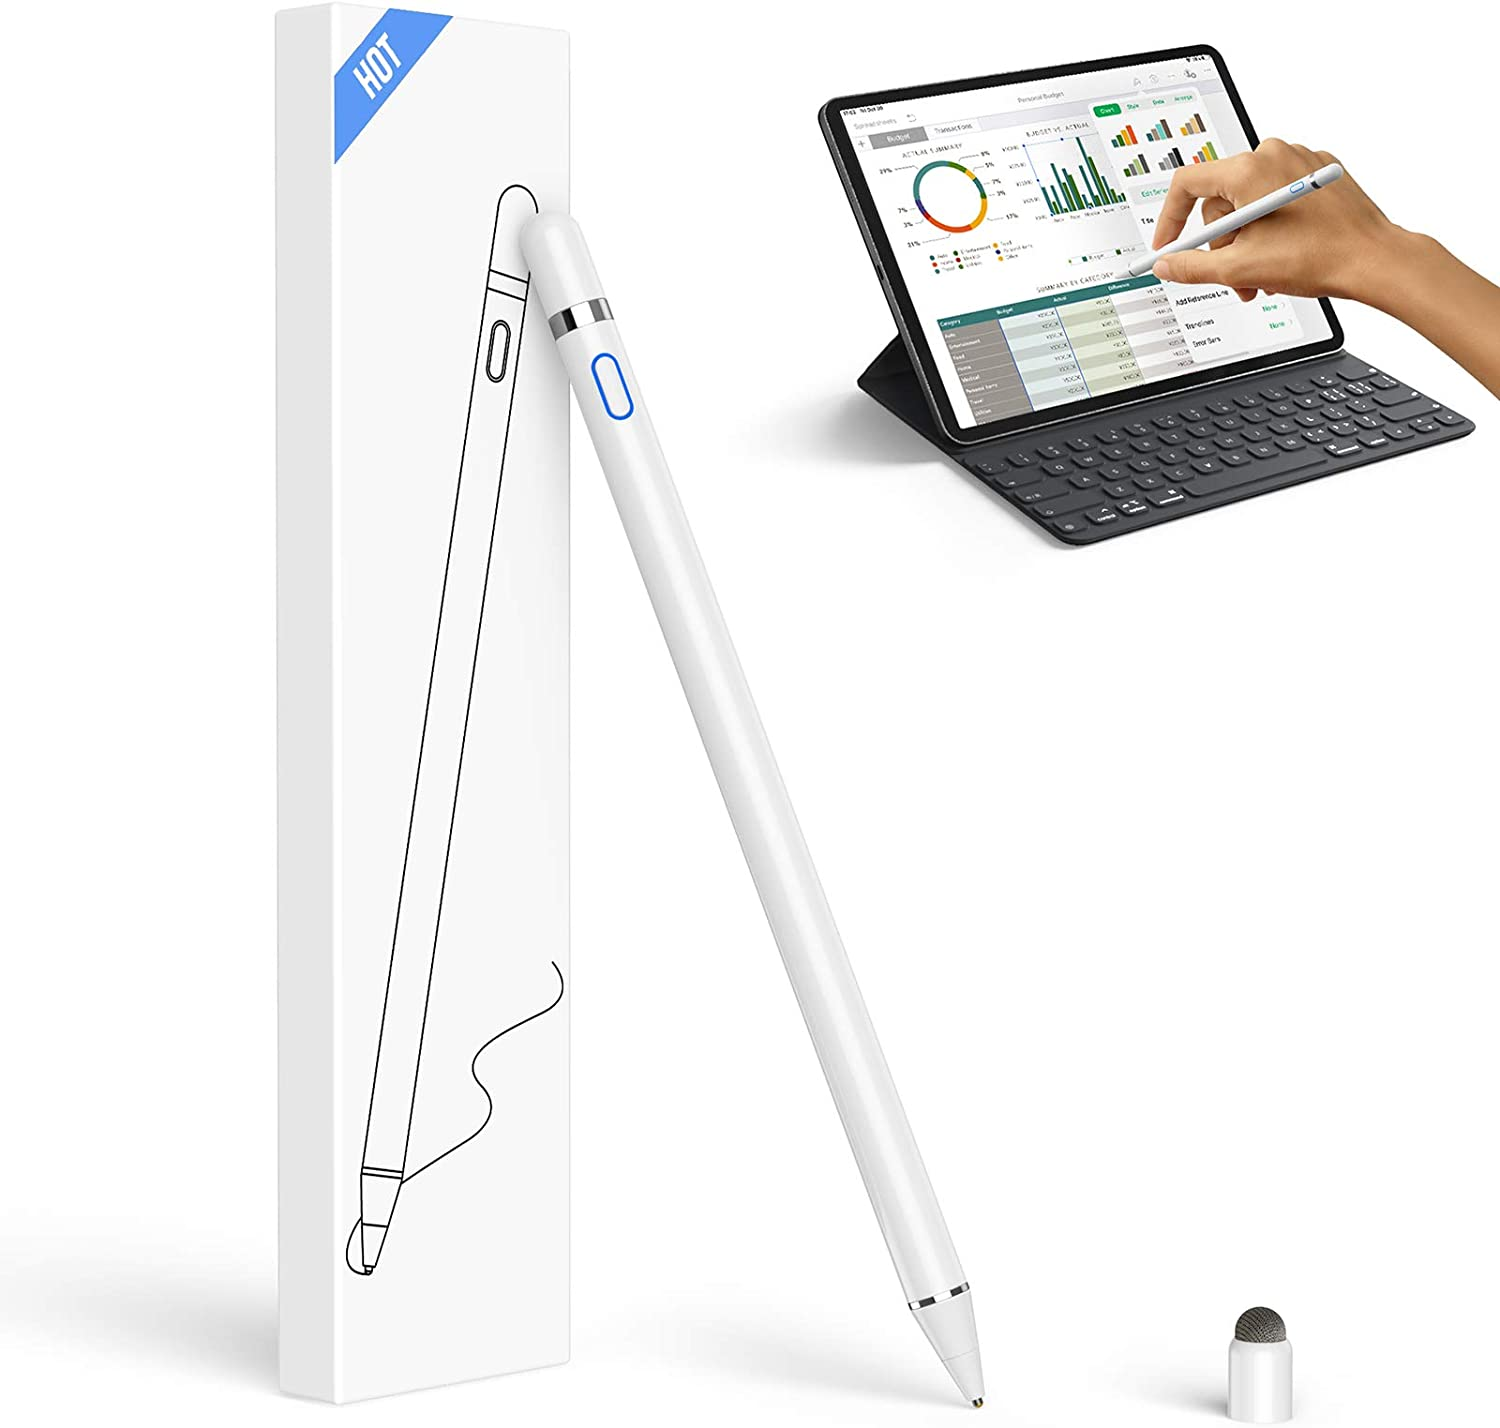 Active Stylus Pen Fine Point Stylus Pen Compatible with iOS/Android Touch Screens, Rechargeable Stylus Pen for Precise Writing & Drawing Stylus for iPad, iPad Pro/Mini, iPhone, Samsung and etc